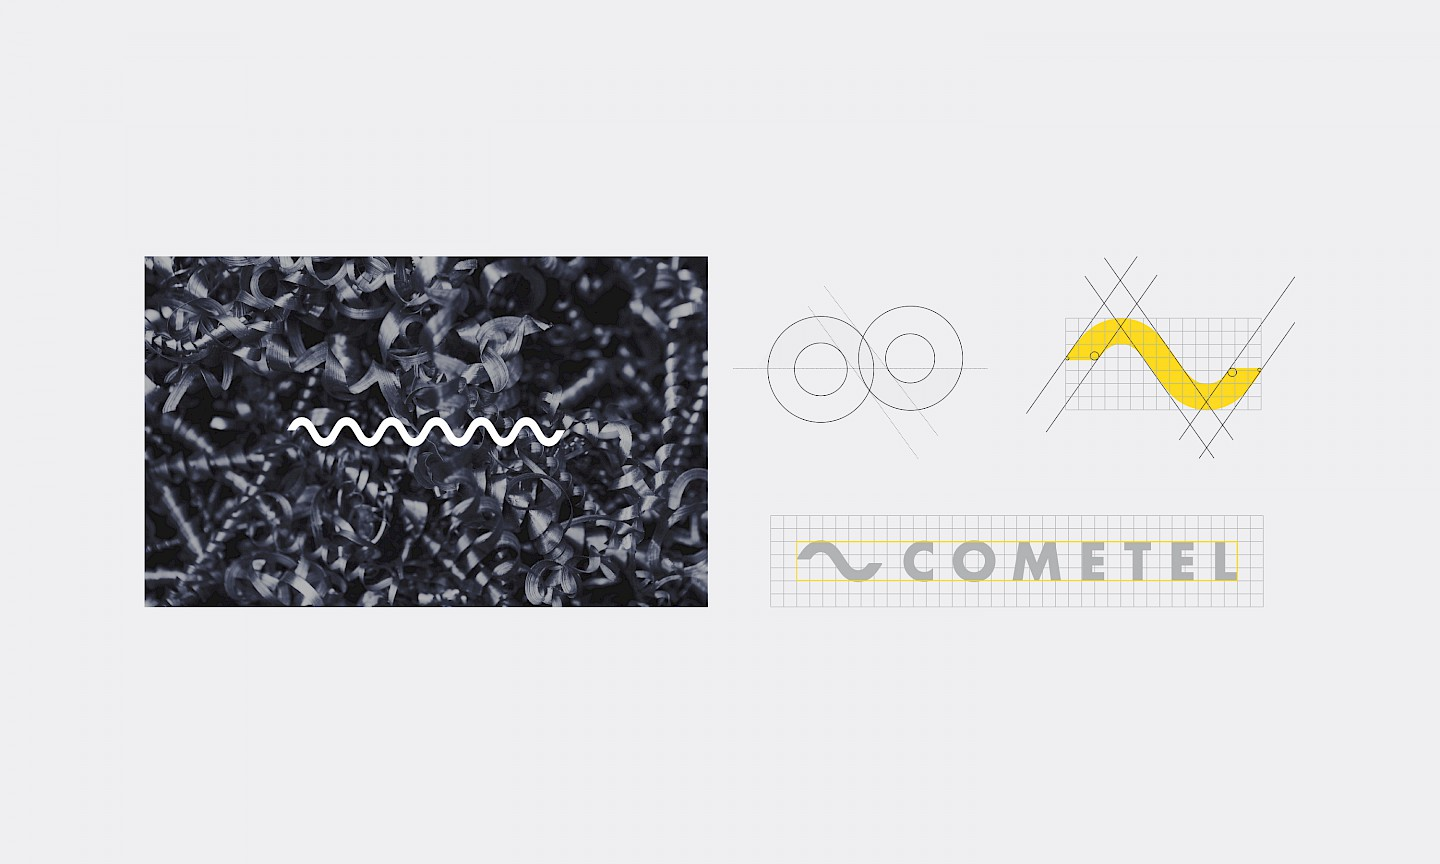 branding design technology move logo cometel